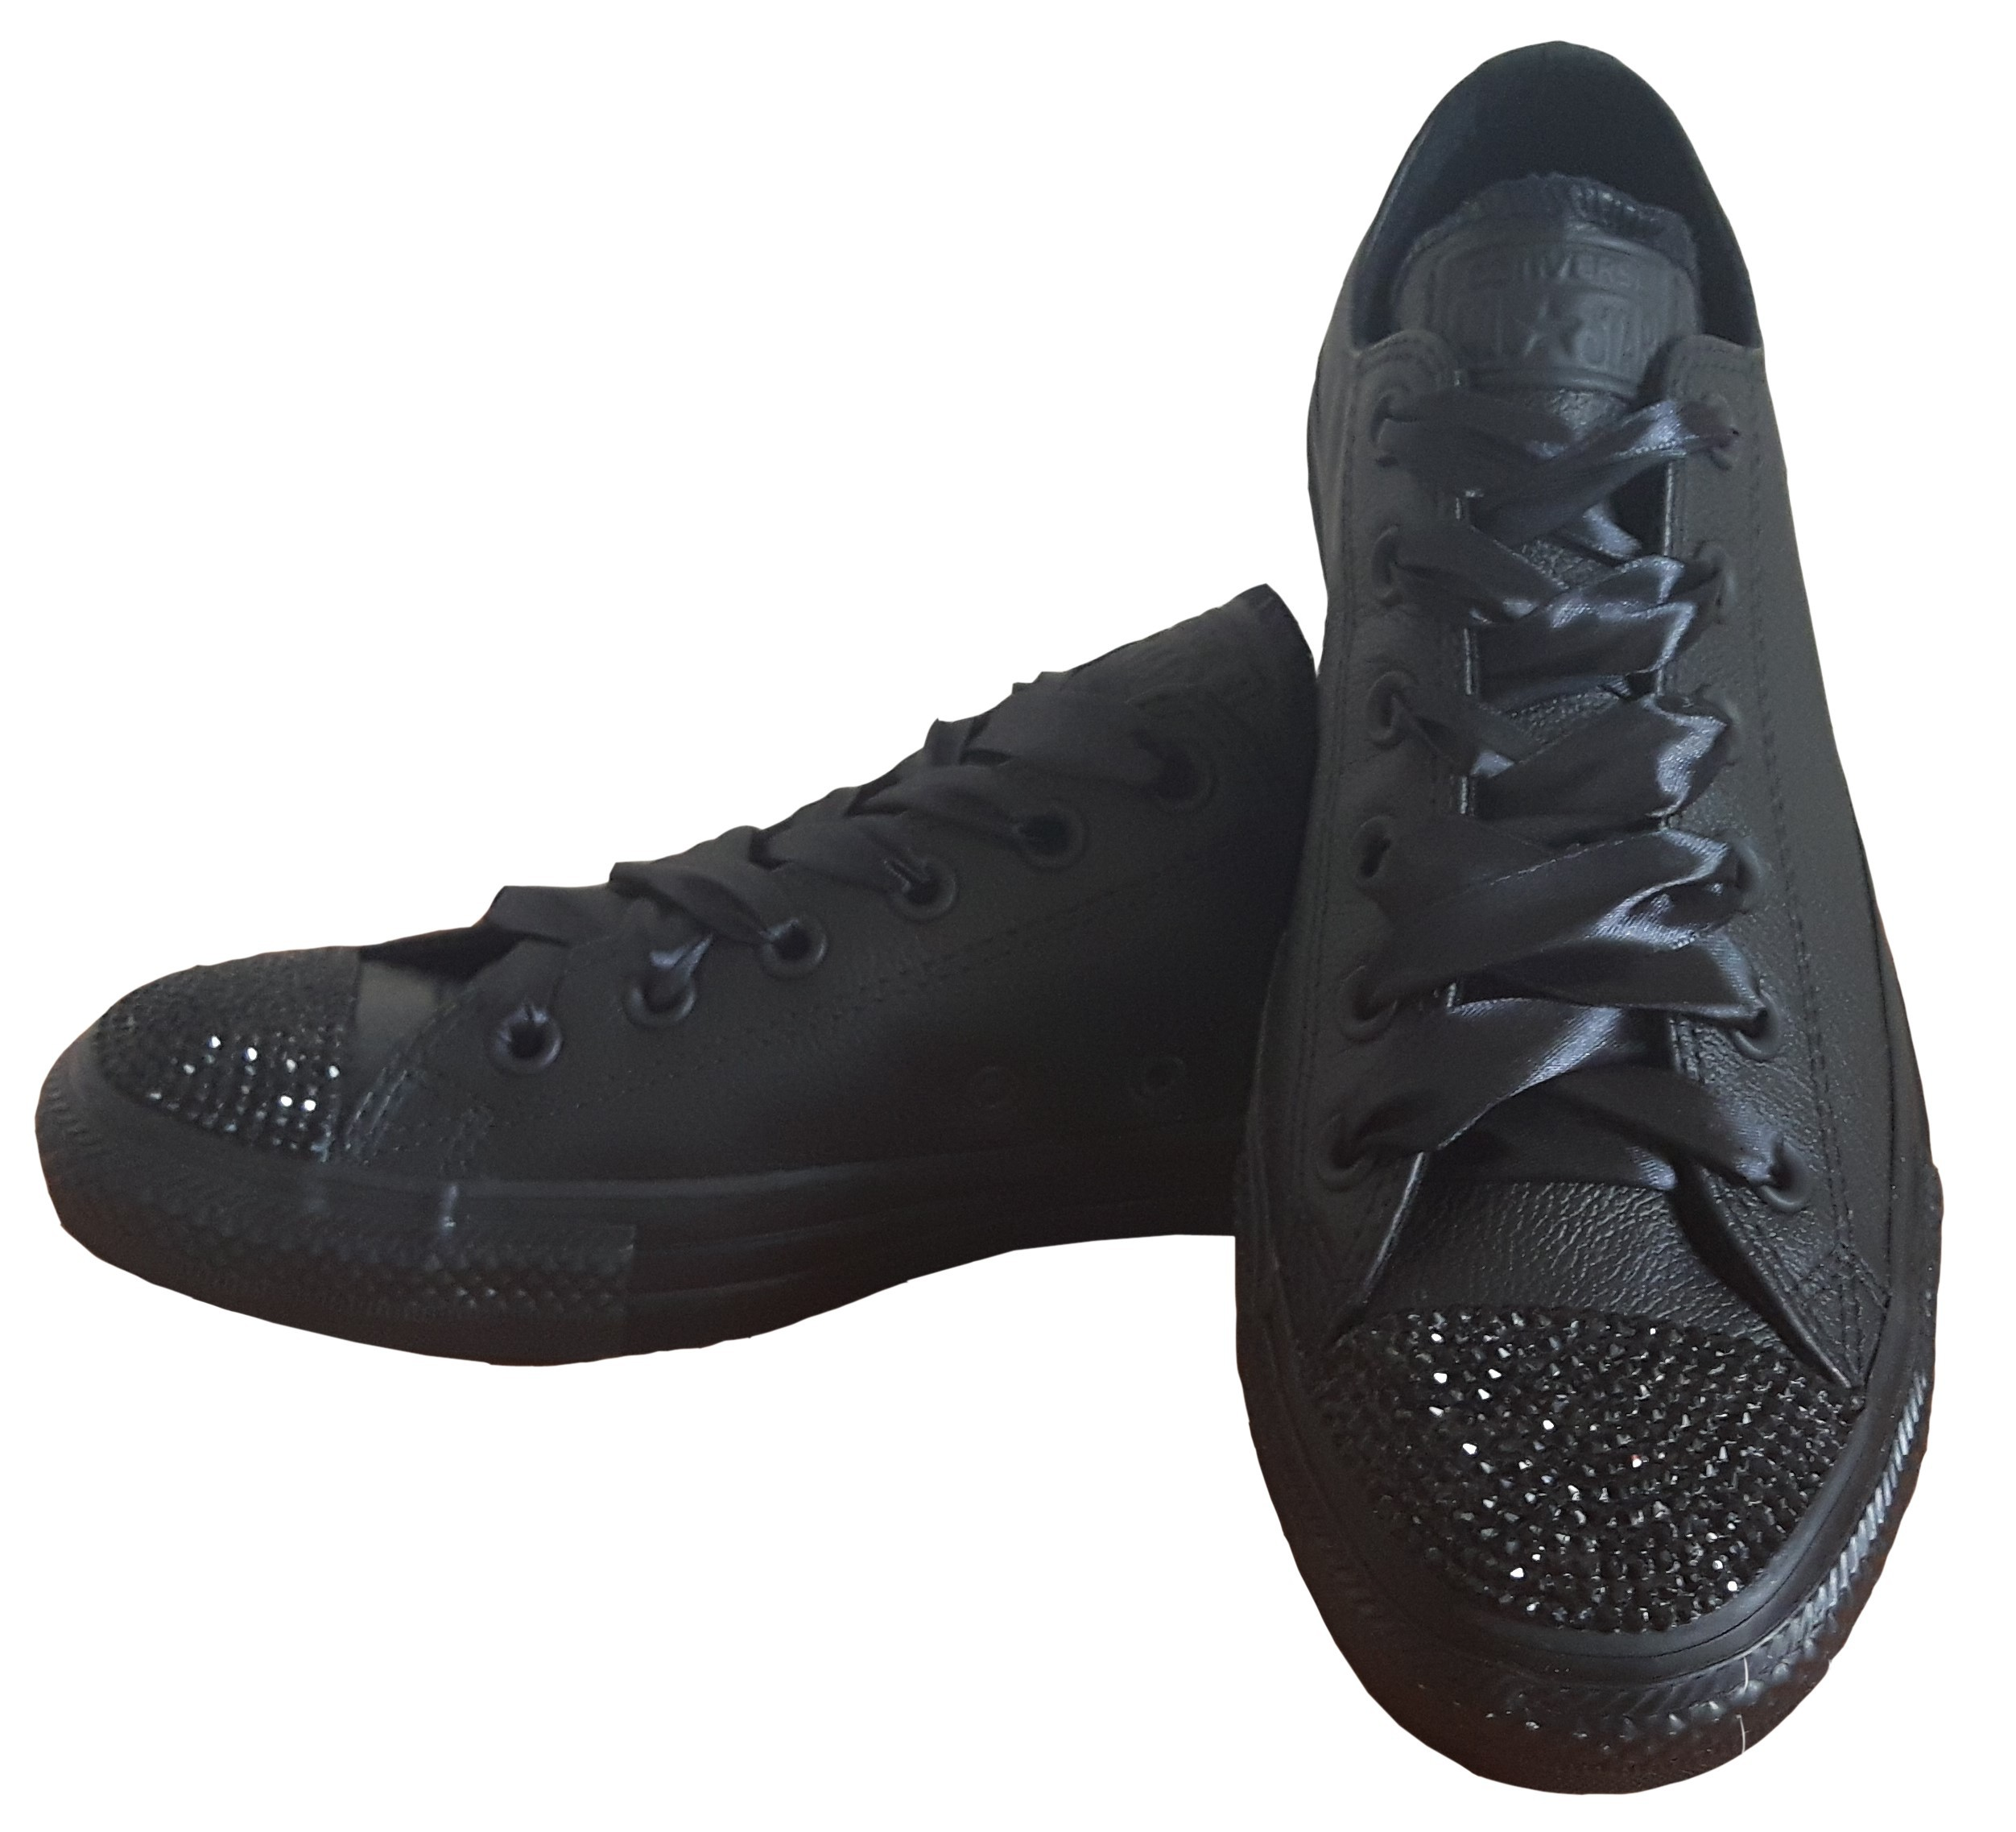 Converse Converse Chuck Taylor All Star 135253 SparkleS Leather Black/Black - 40 C135253